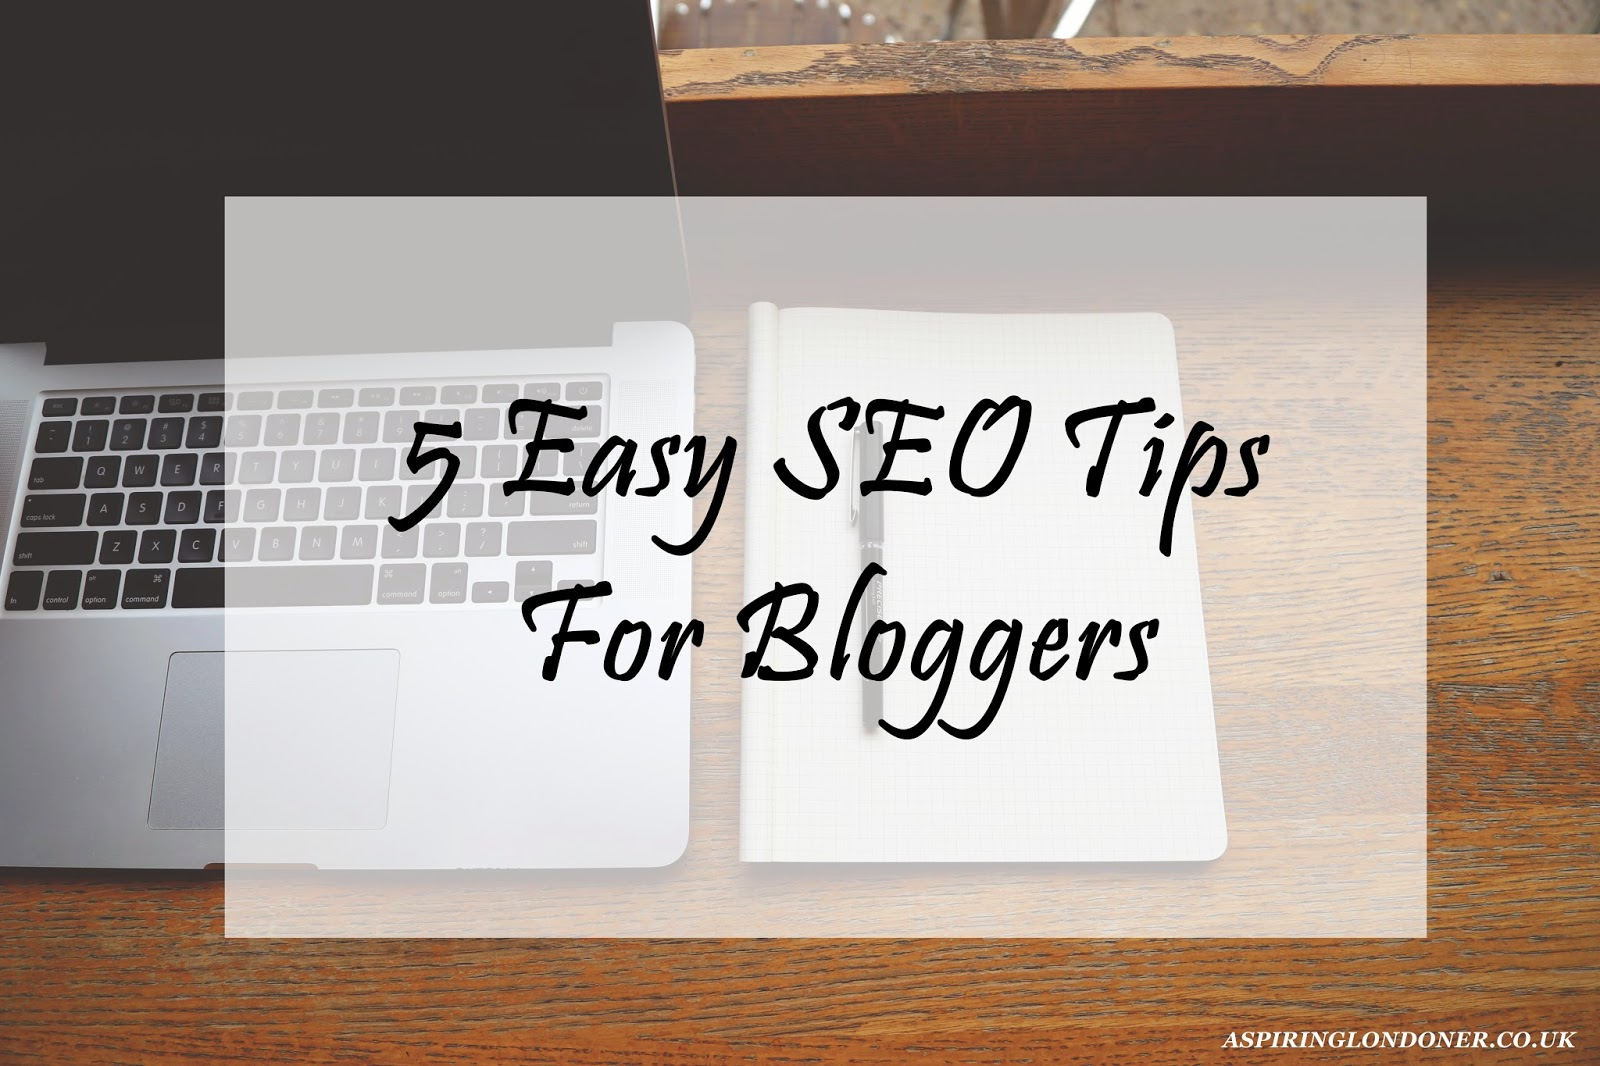 5 Easy SEO Tips For Bloggers - Aspiring Londoner